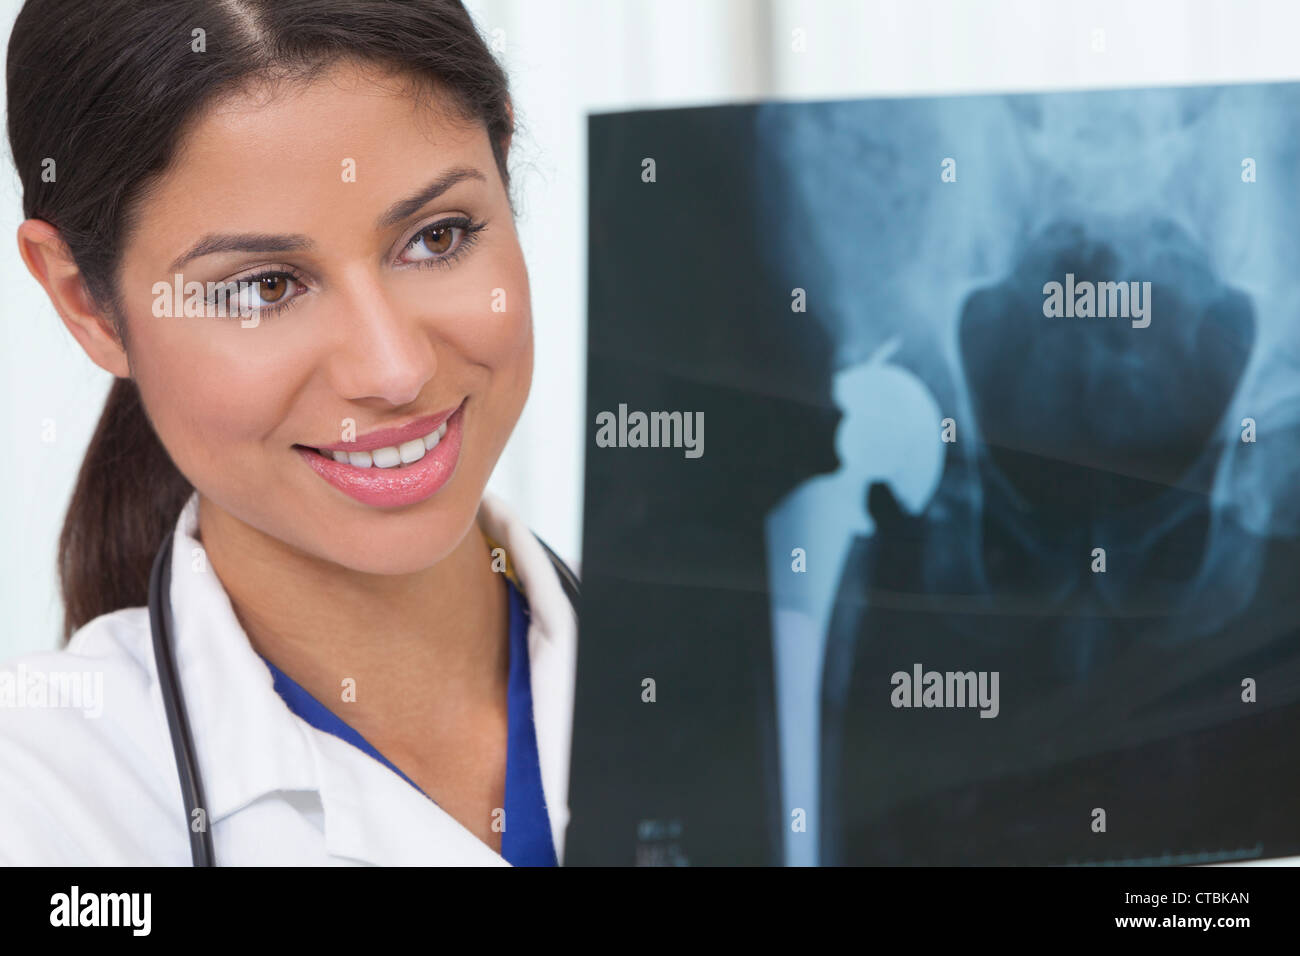 Female woman medical doctor holding artificial hip replacement x-ray in hospital - Stock Image